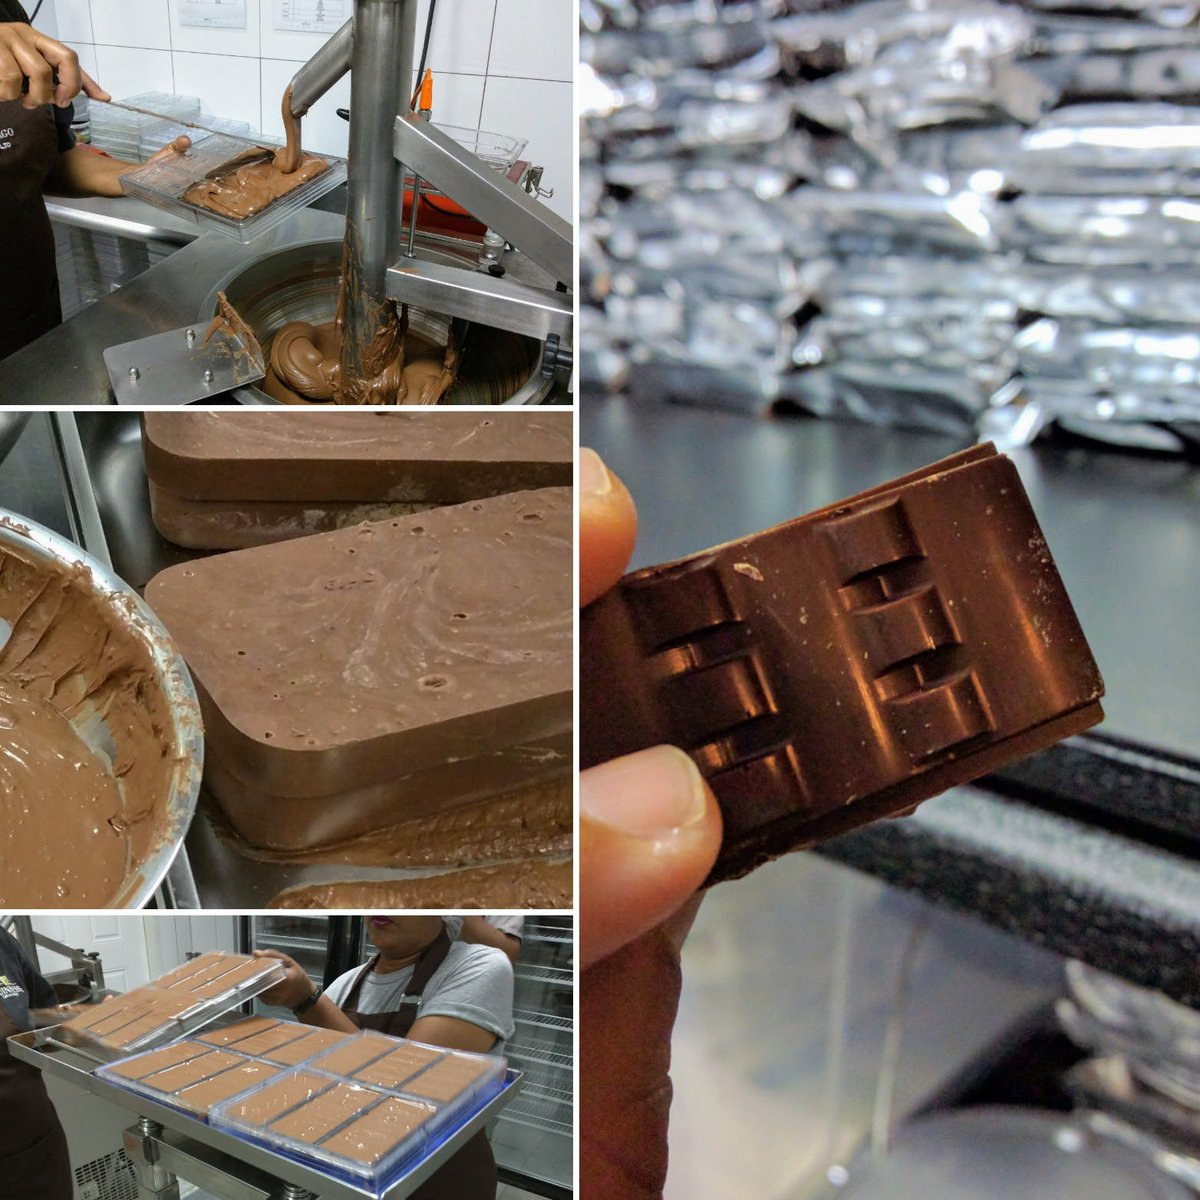 There&#39;s only one thing better than eating fine #chocolate and that&#39;s watching it being made! Oh, what a #happyday! <br>http://pic.twitter.com/WU5hOvFySj